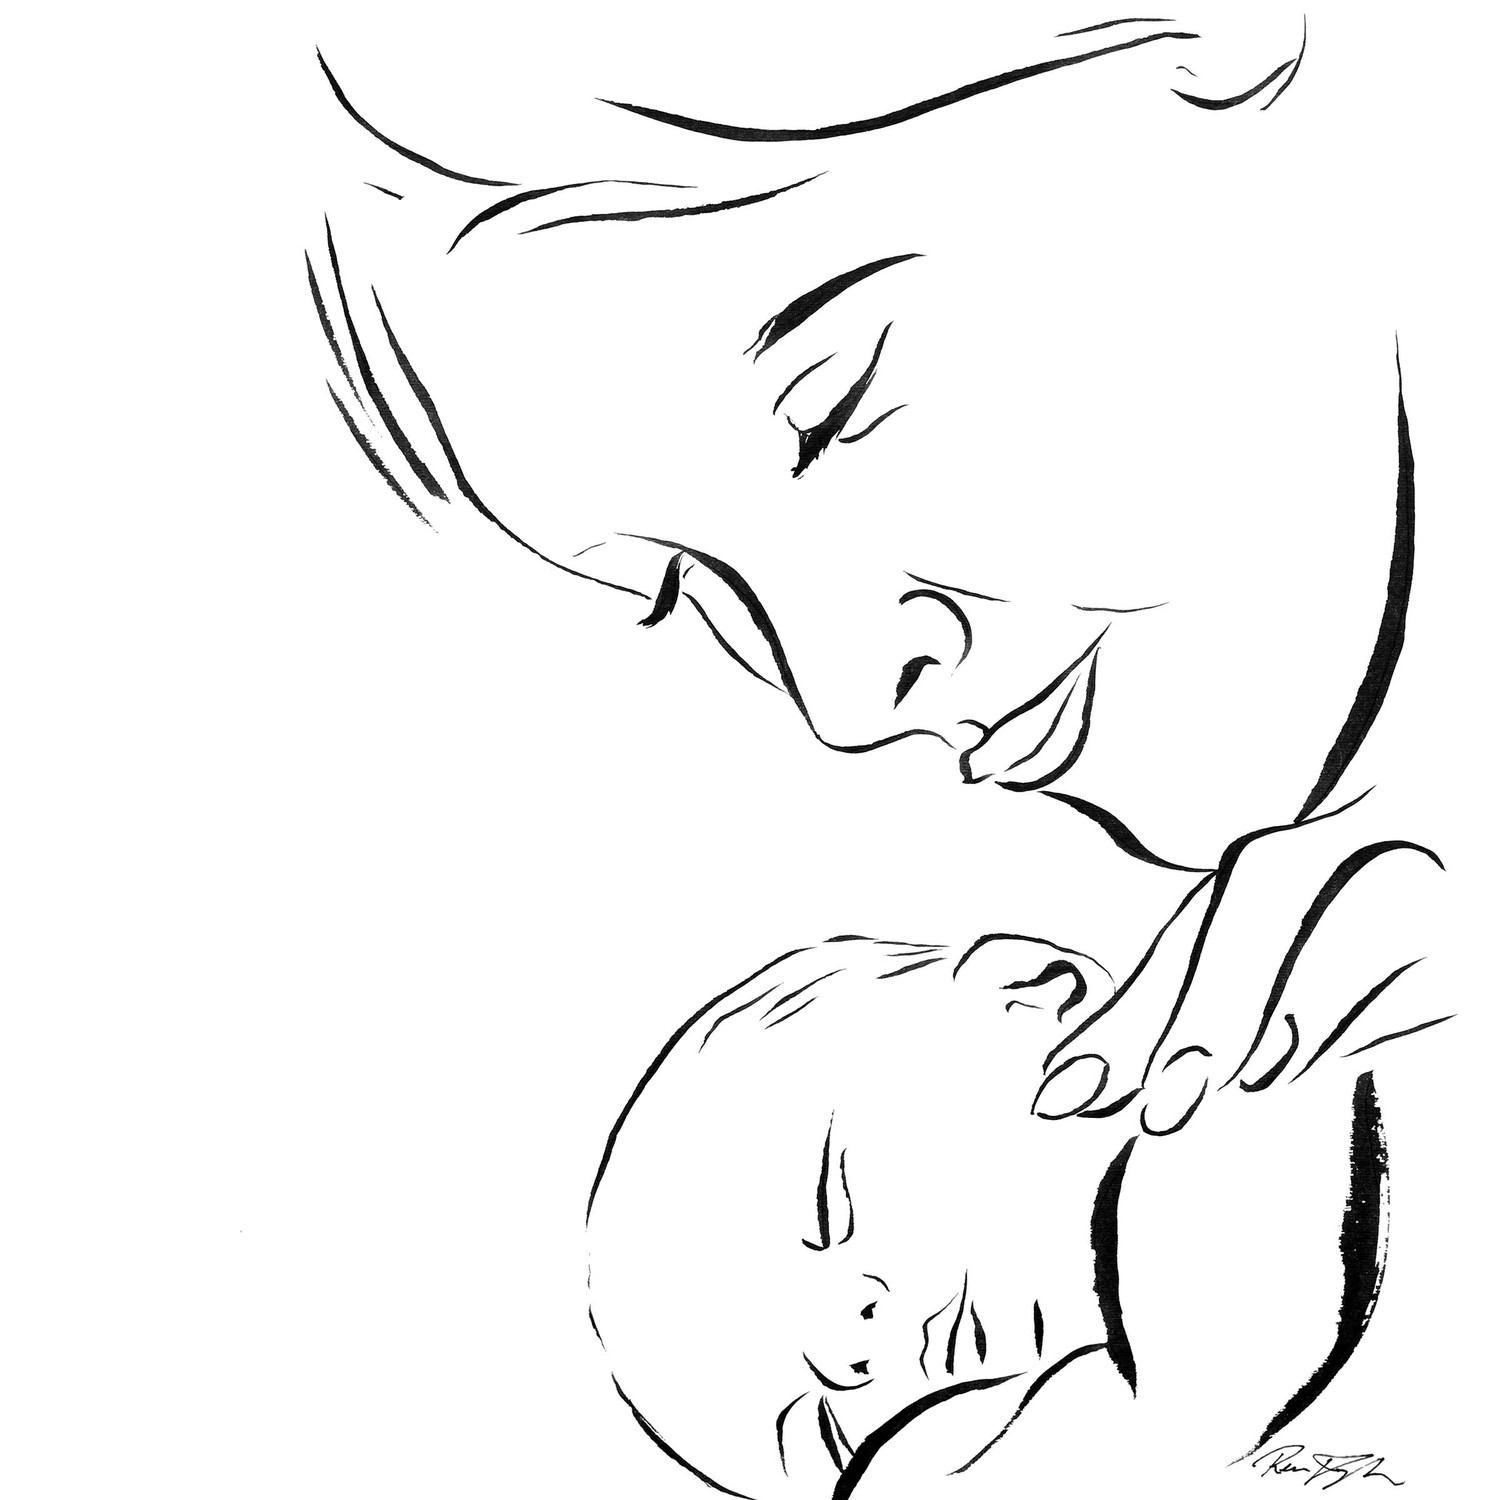 1500x1500 Mother With Child Drawing Mother And Child Realistic Art, Pencil